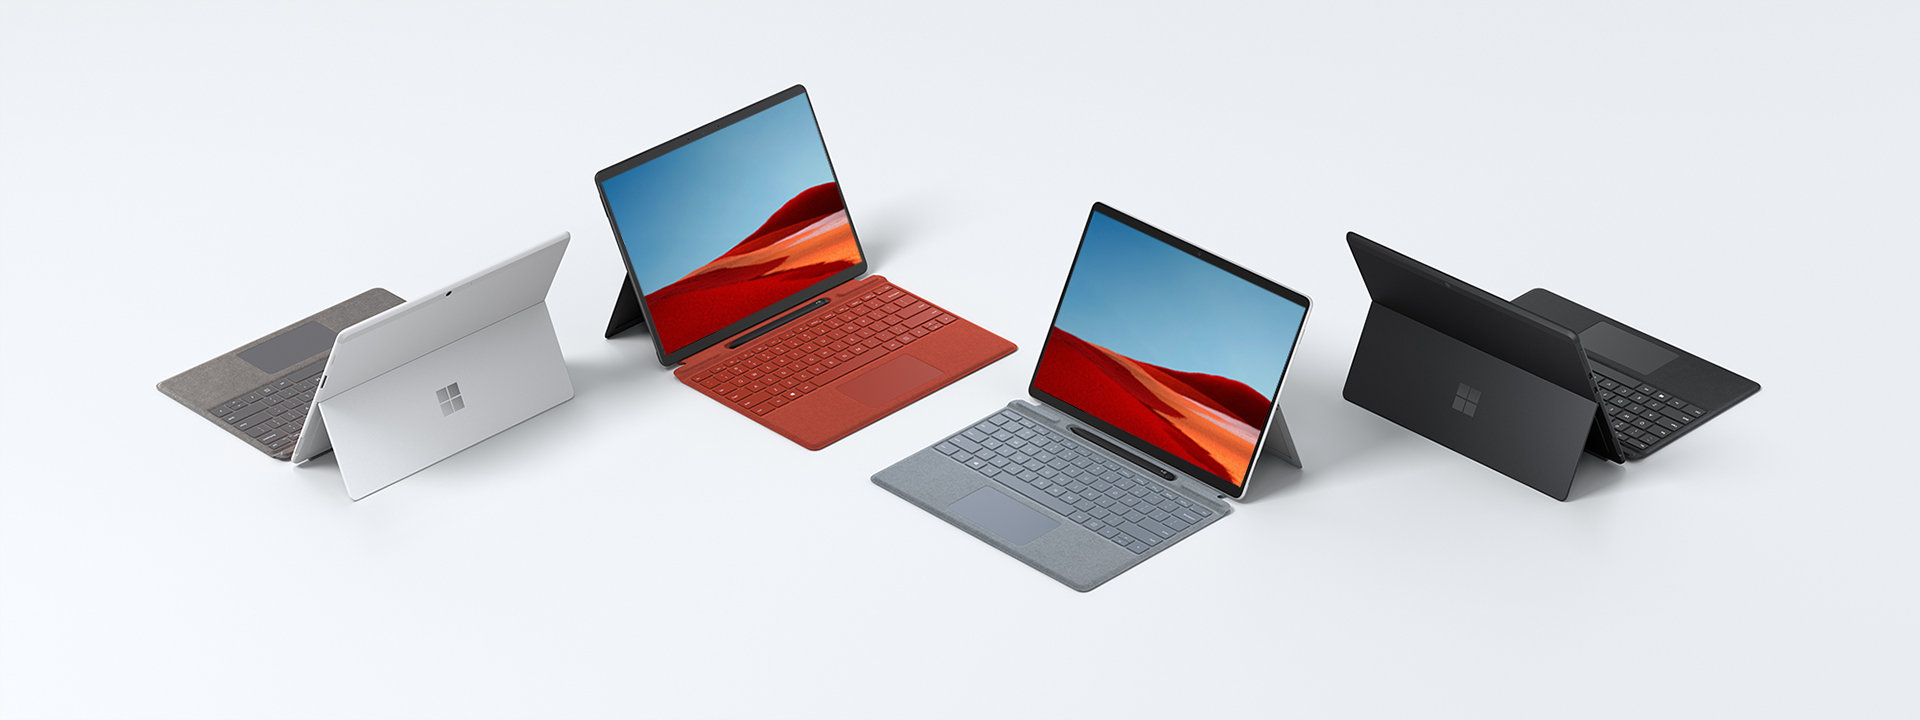 A collection of Surface Pro X devices.